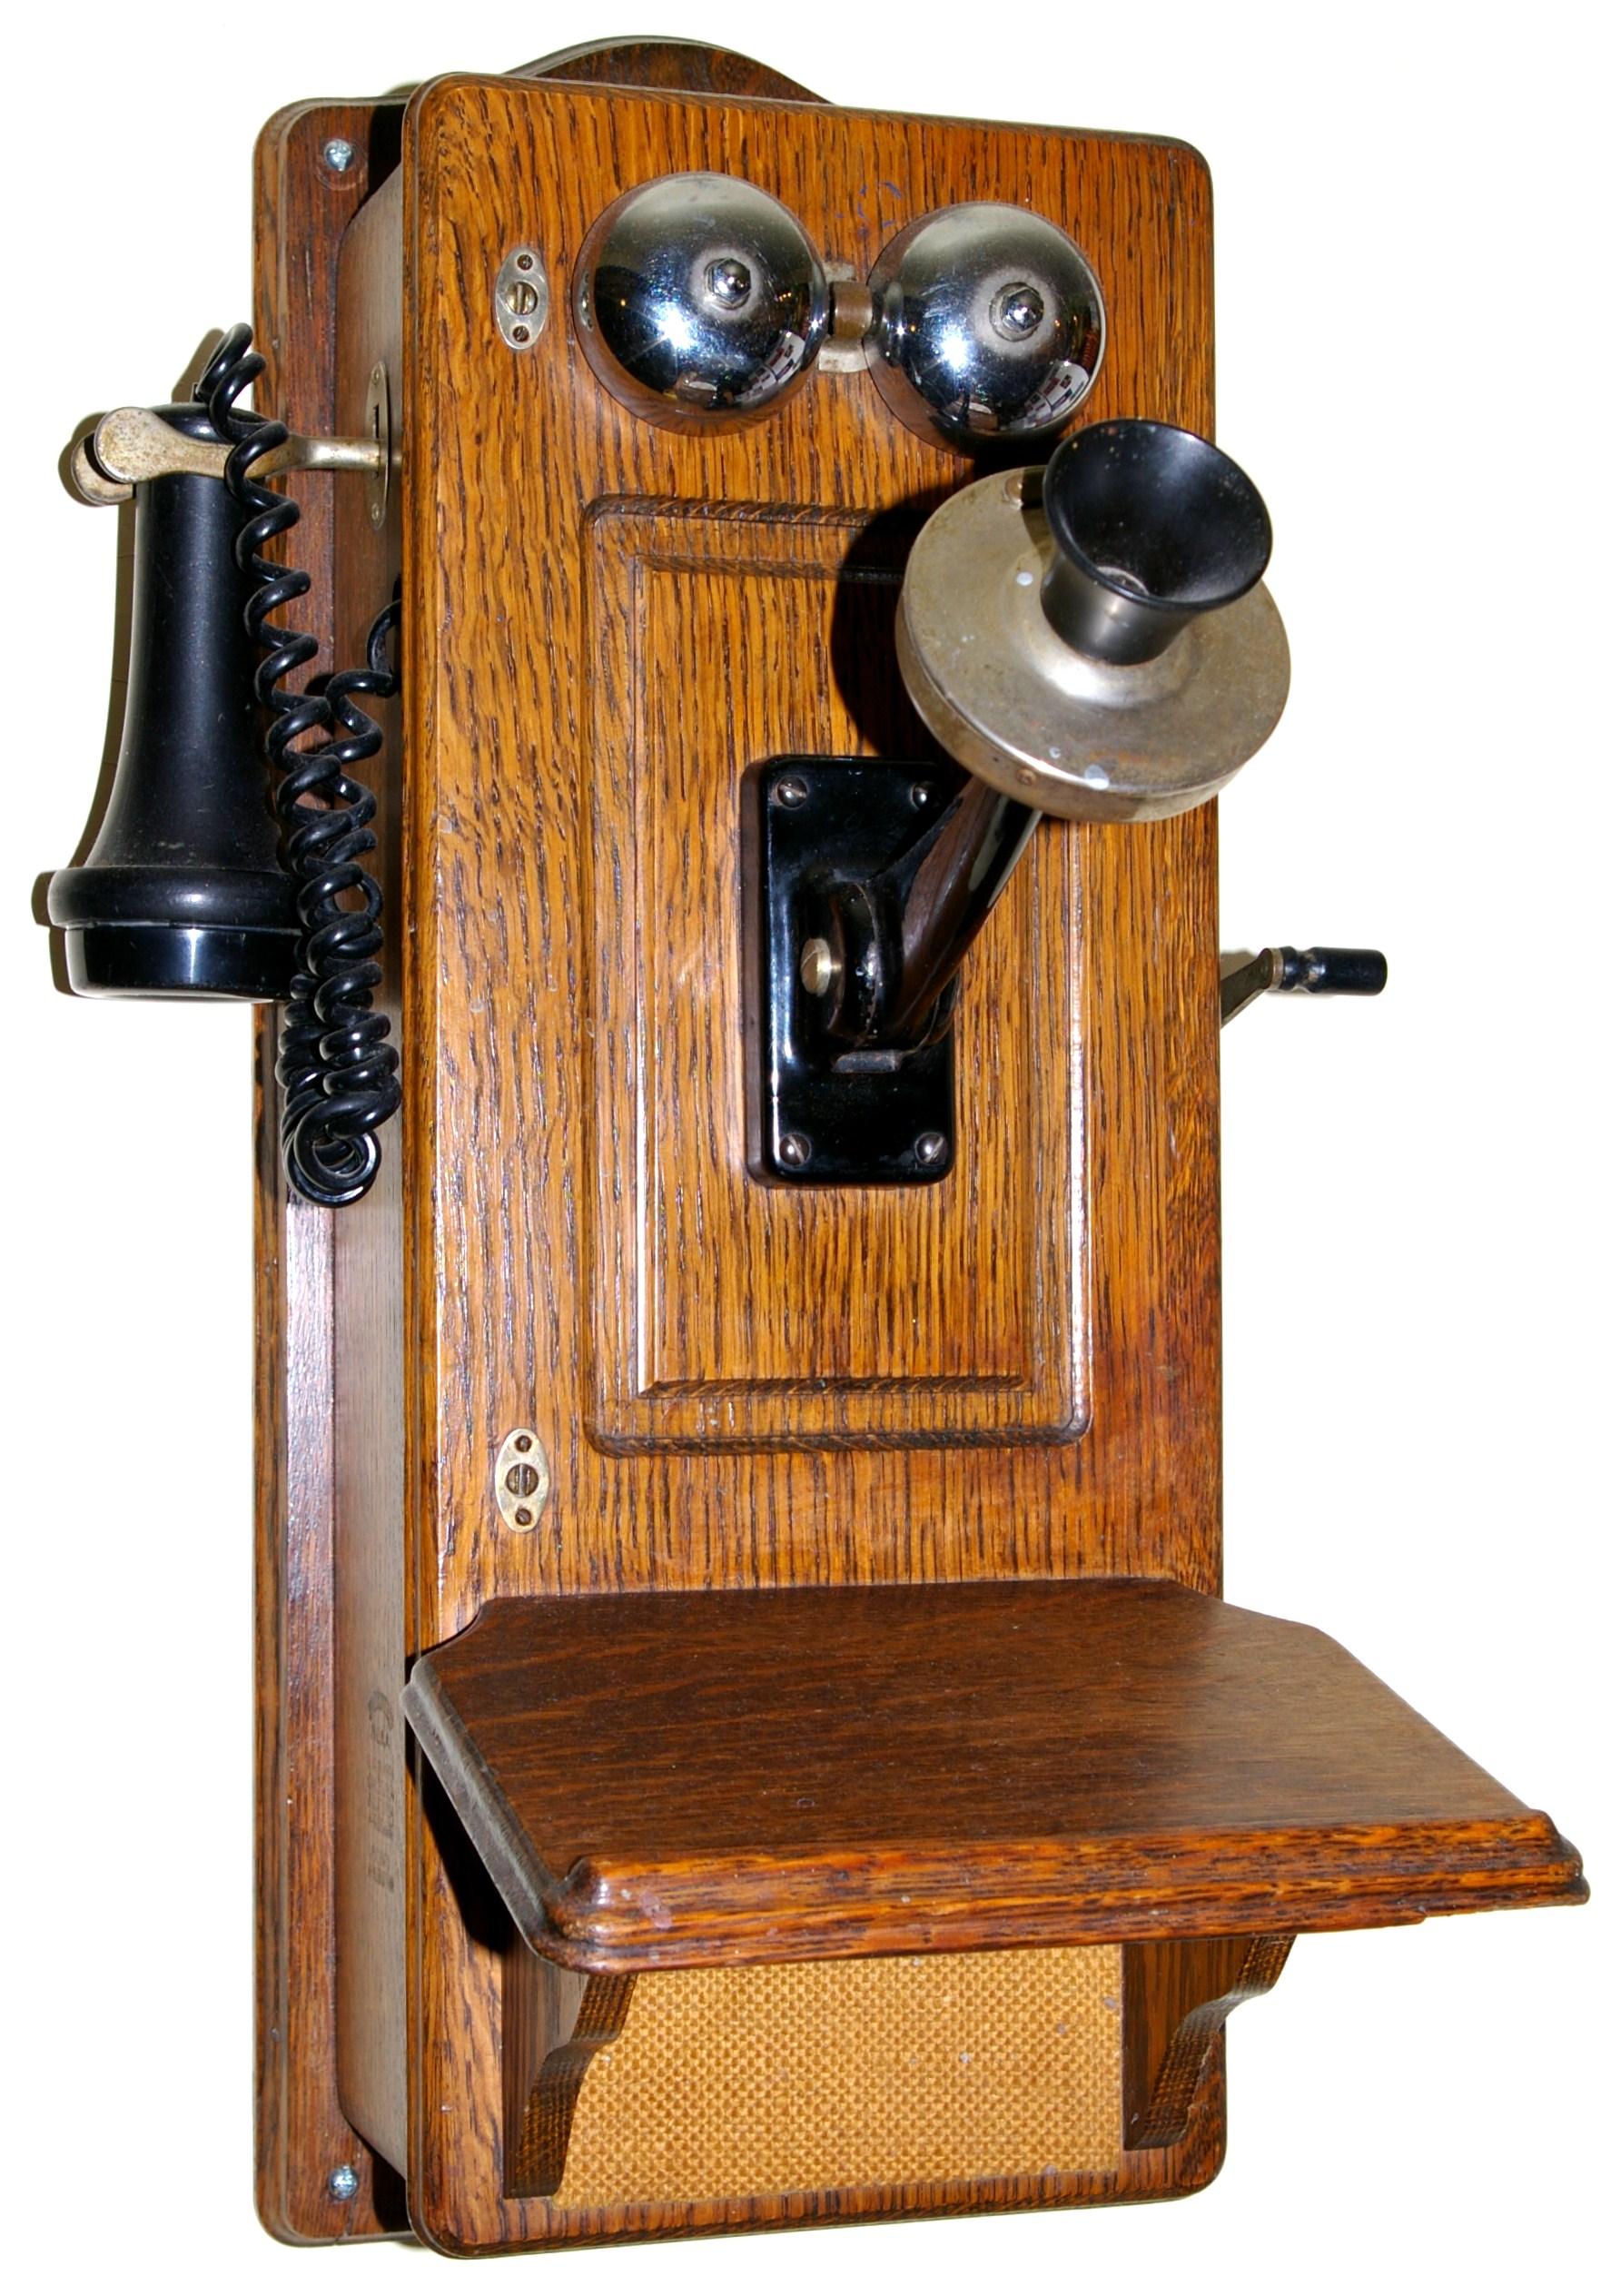 hight resolution of old fashioned wall phone libaifoundation image fashion